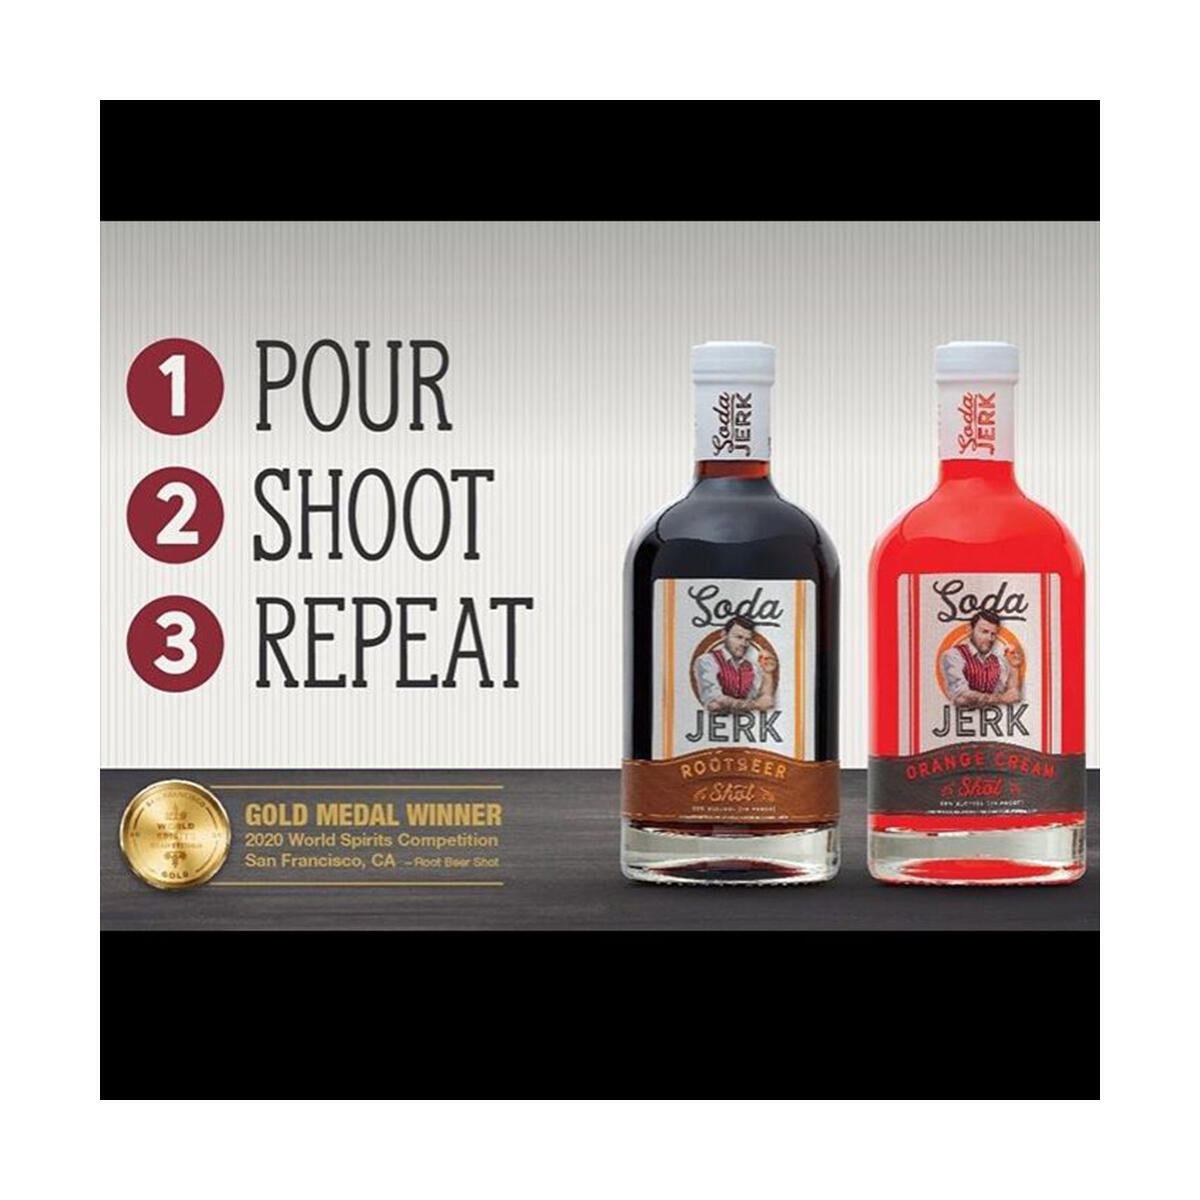 SODA JERK SHOTS - Vodka Based Liquor | 2 Bottle PICK YOUR OWN Combo Pack 750ml each - MUST BE 21+ to Purchase / Adult Signature Required